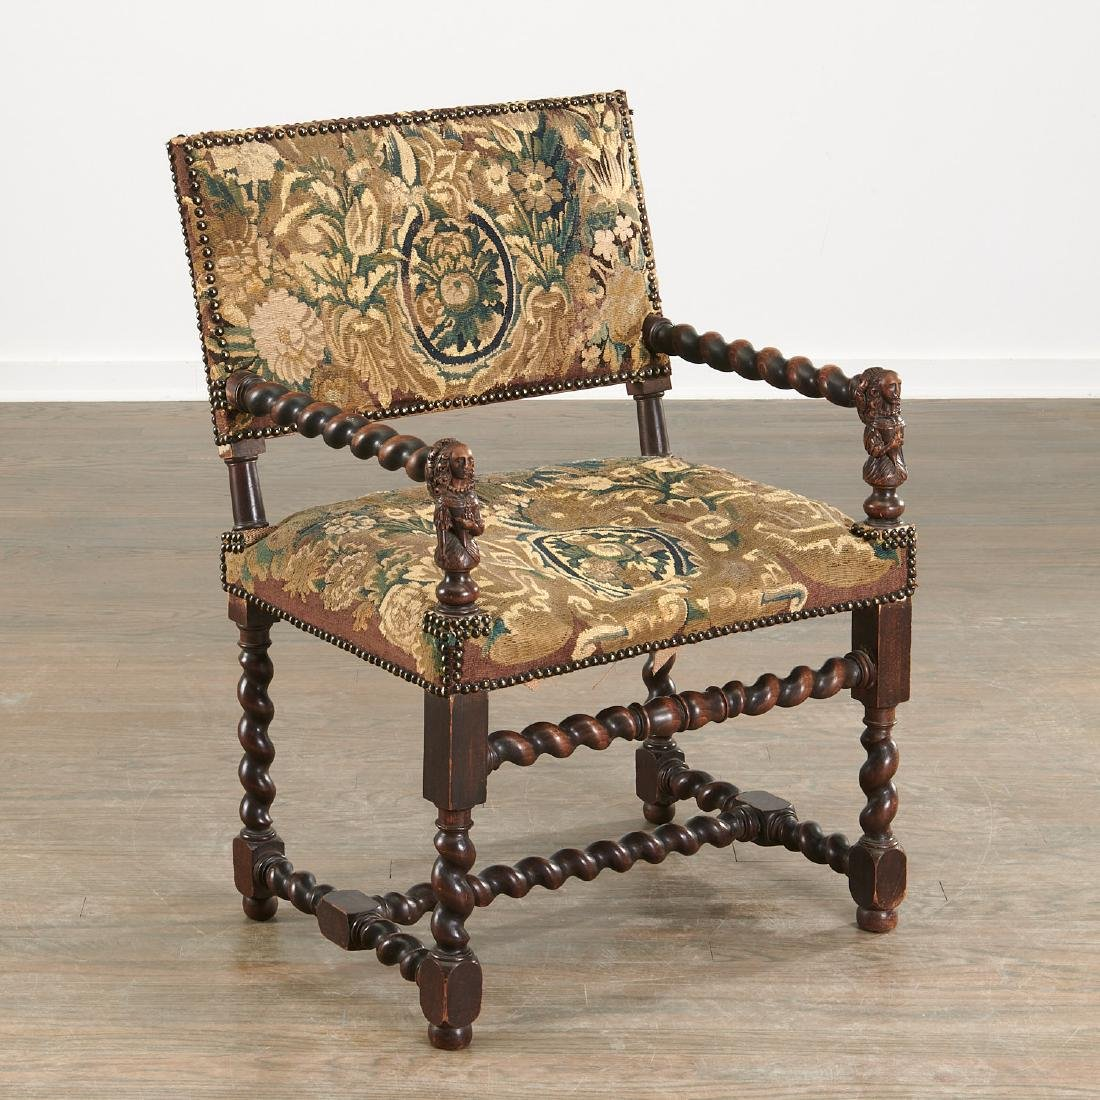 Franco-Flemish Baroque style armchair